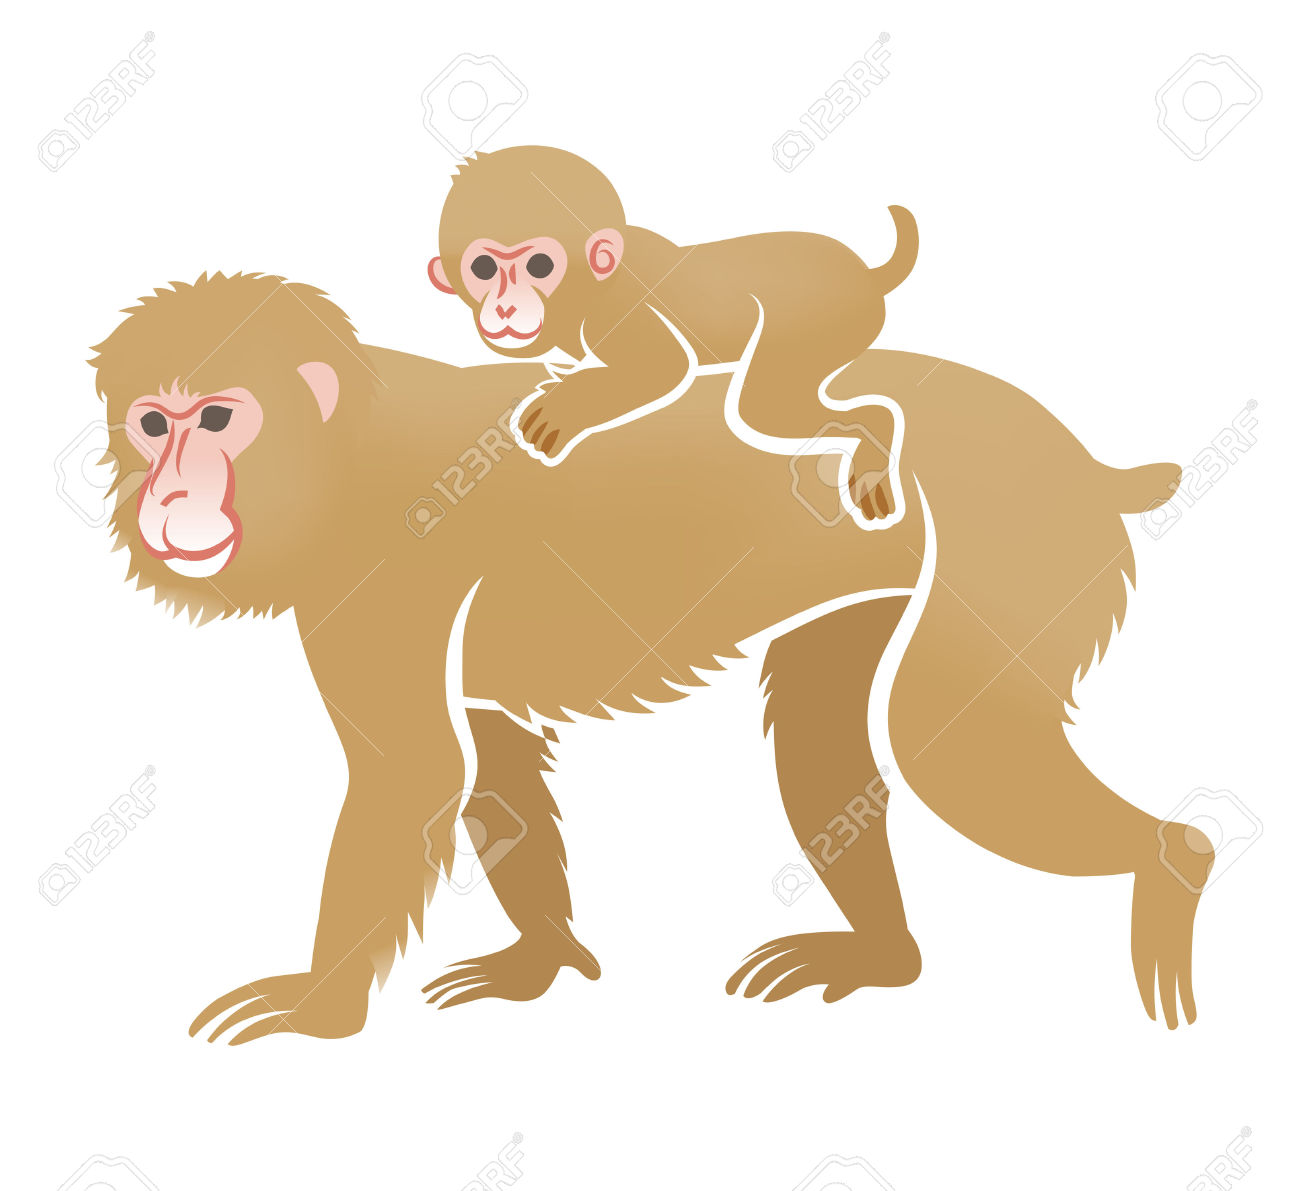 Baby Macaque Monkey Clip Art.